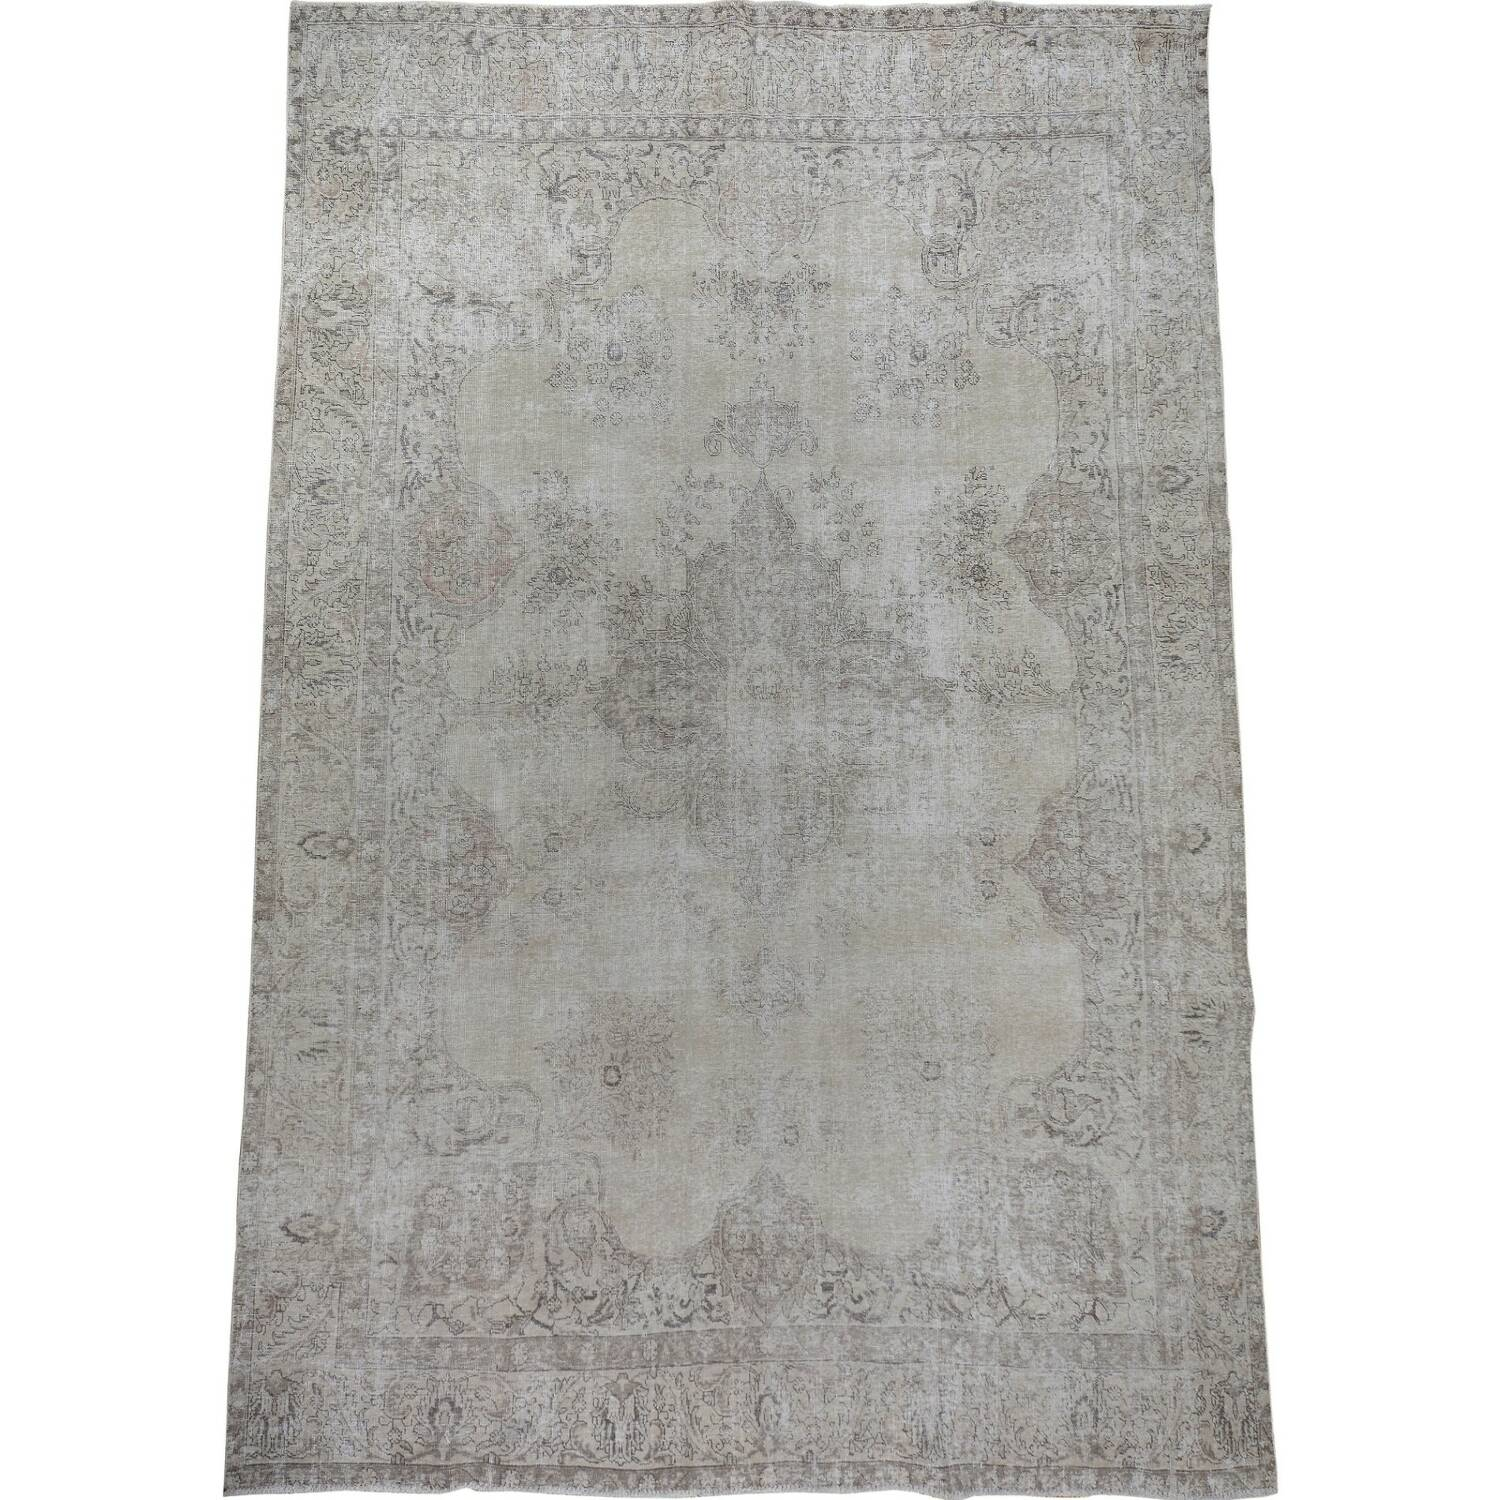 Antique Muted Floral Tabriz Persian Distressed Area Rug 9x13 image 2